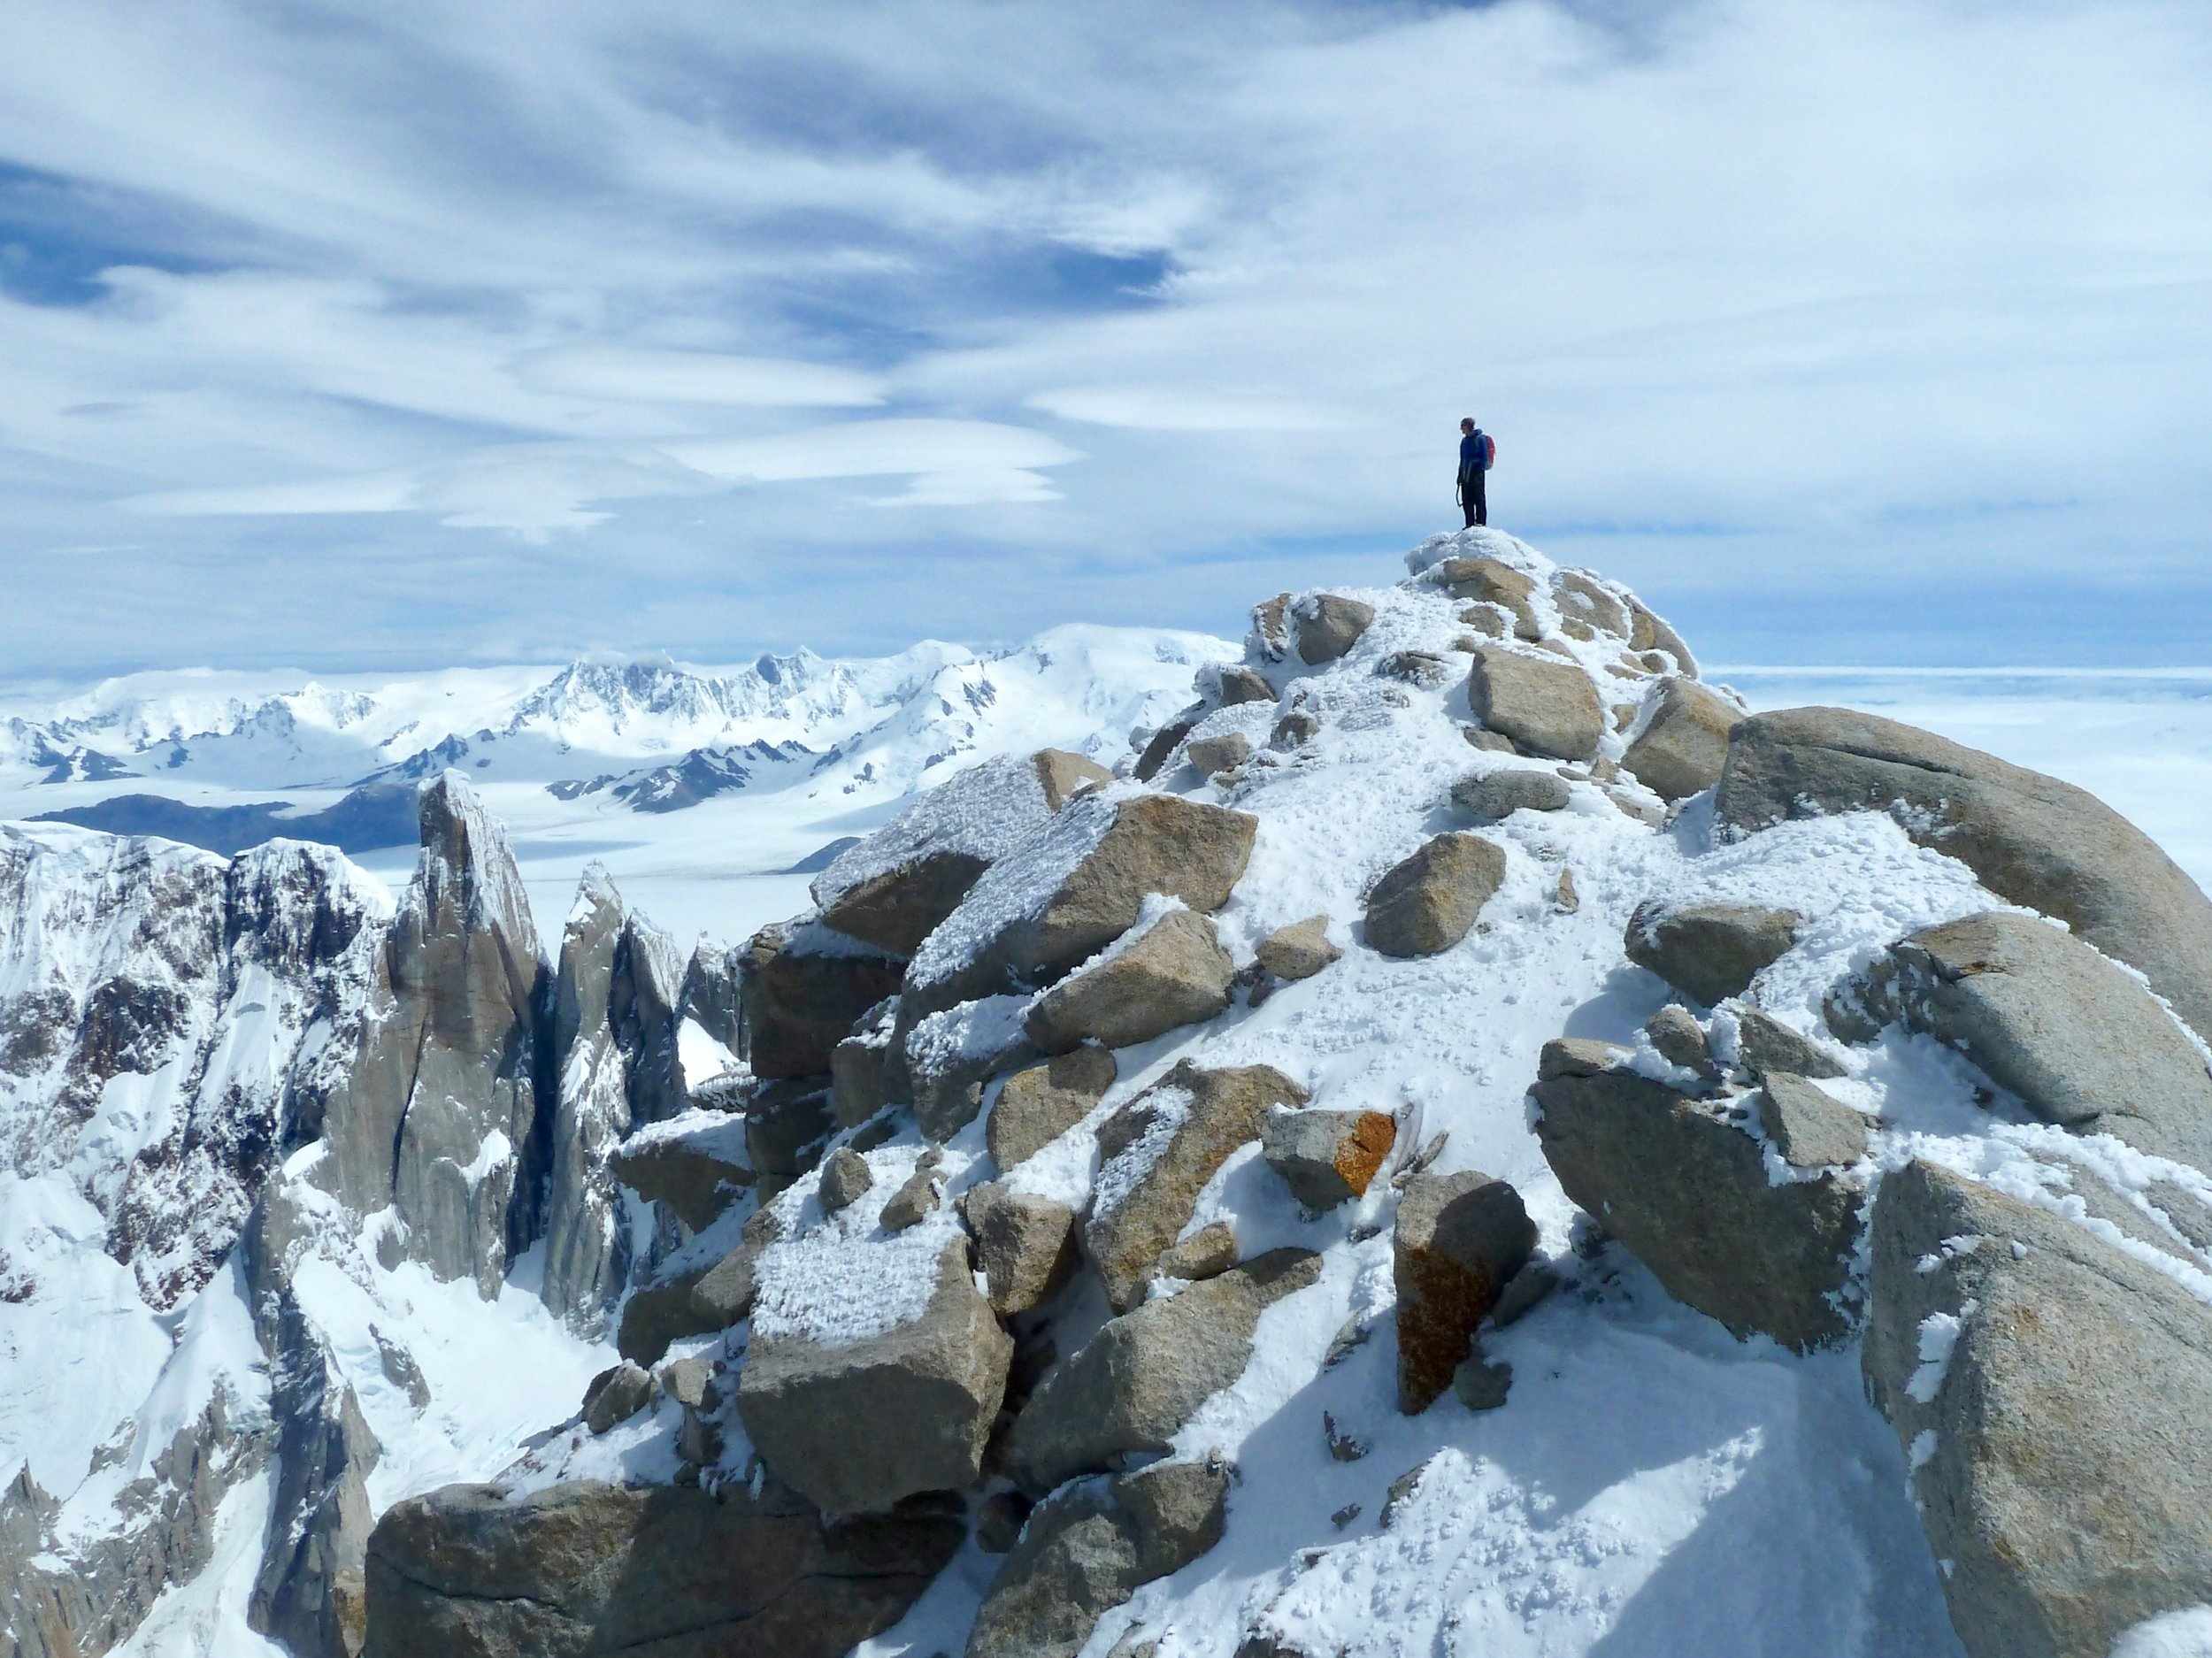 tony stone on the summit of fitzroy. patagonia.